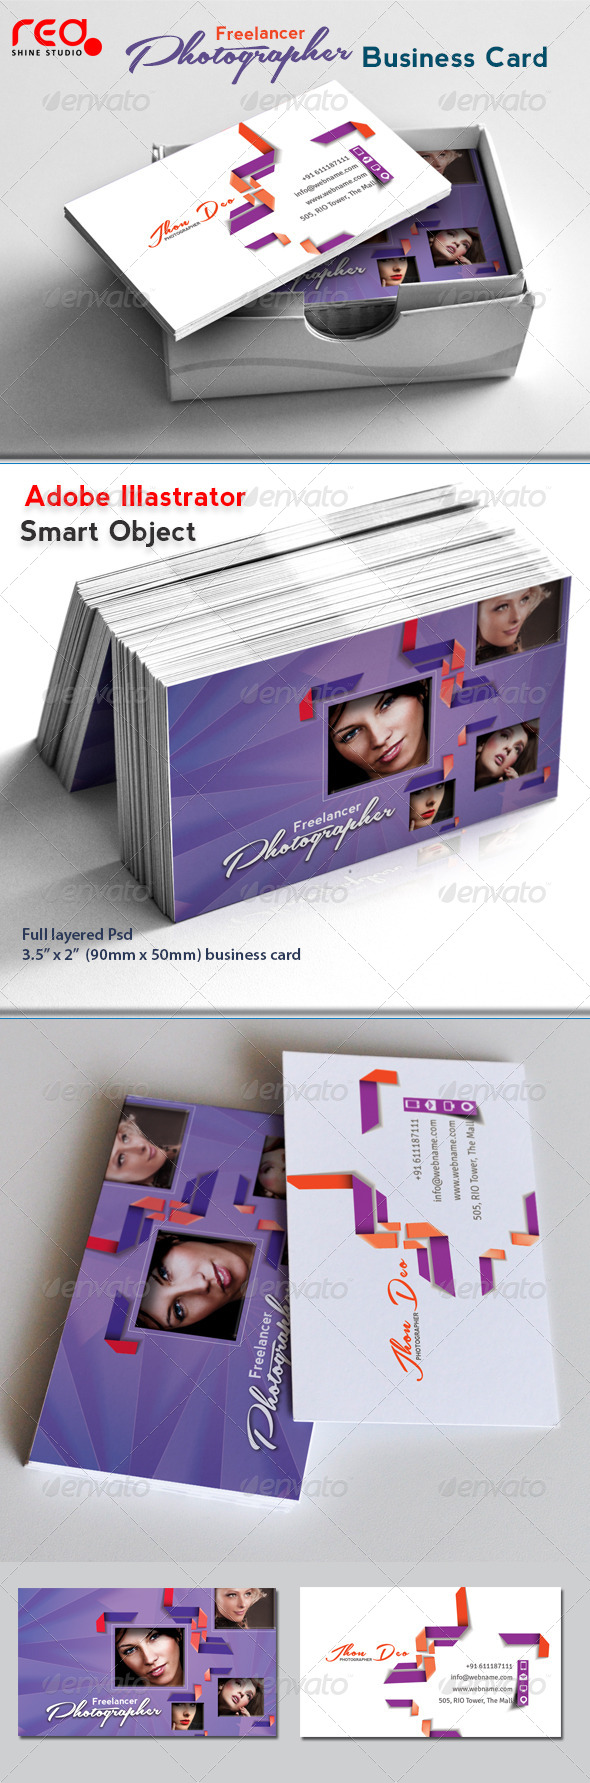 GraphicRiver Freelance Photographer Business Card 03 4643436